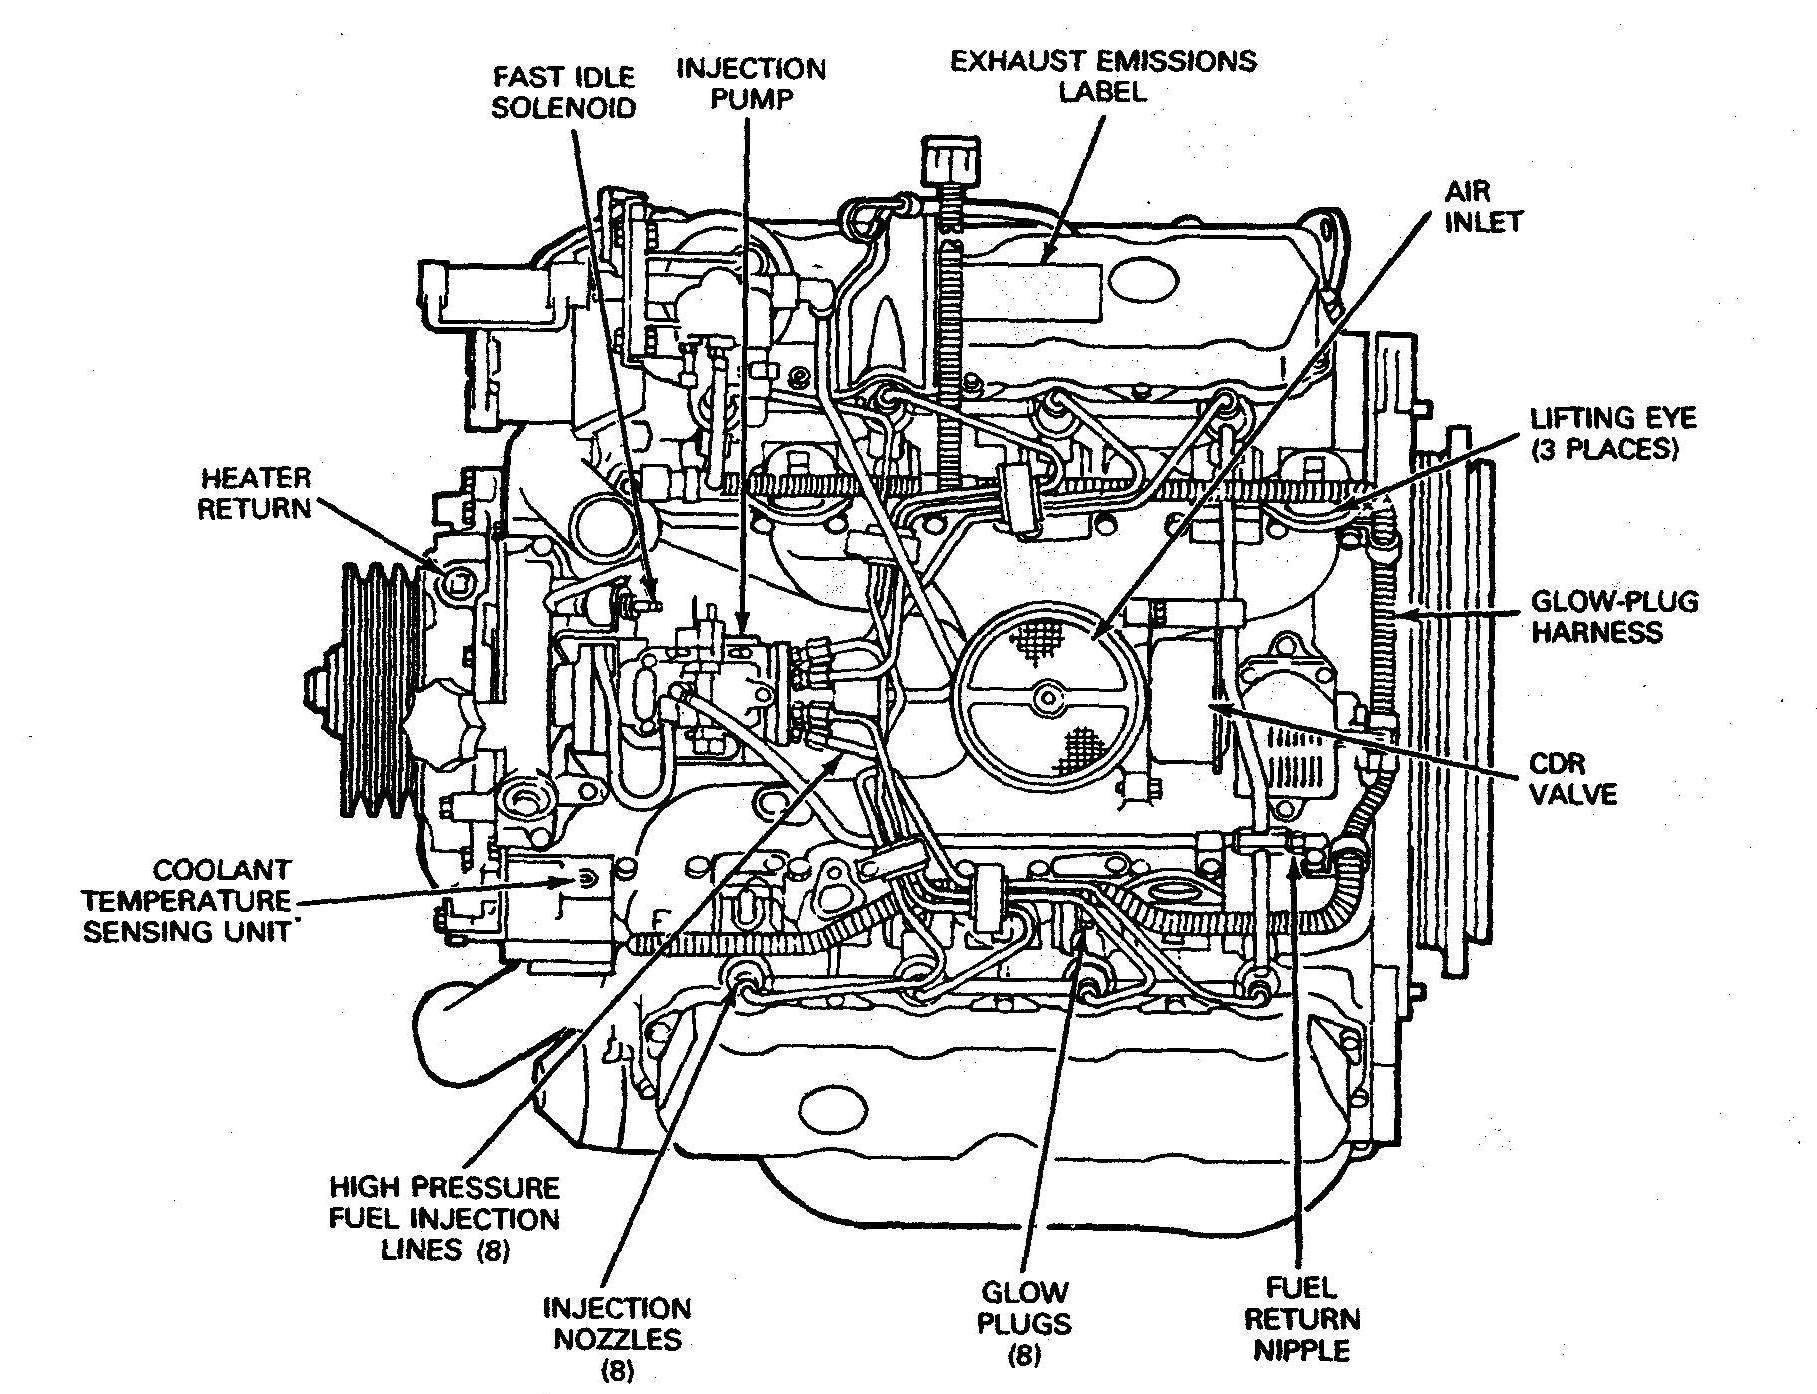 Chevy 350 Engine Parts Diagram 1977 Starter Wiring Ford V6 3 7 Diagrams Instructions Of